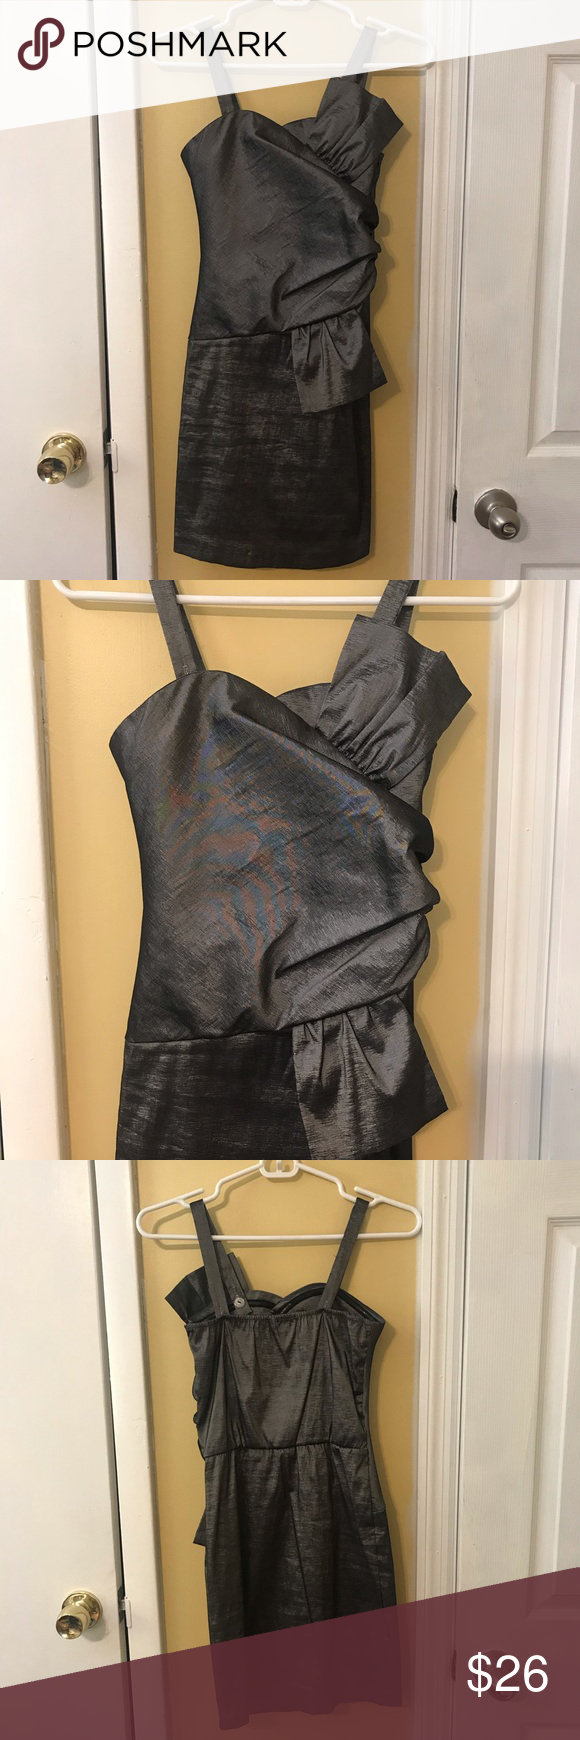 Sally Miller Couture Metallic/Silver Dress Sally Miller Couture Metallic/Silver Dress Size: 14 Excellent condition, comes from smoke free home. Only used twice. Elegant and classy, perfect for any formal event or a night out. Dress has adjustable button straps. Can also be worn strapless. Sally Miller Dresses #sallymiller